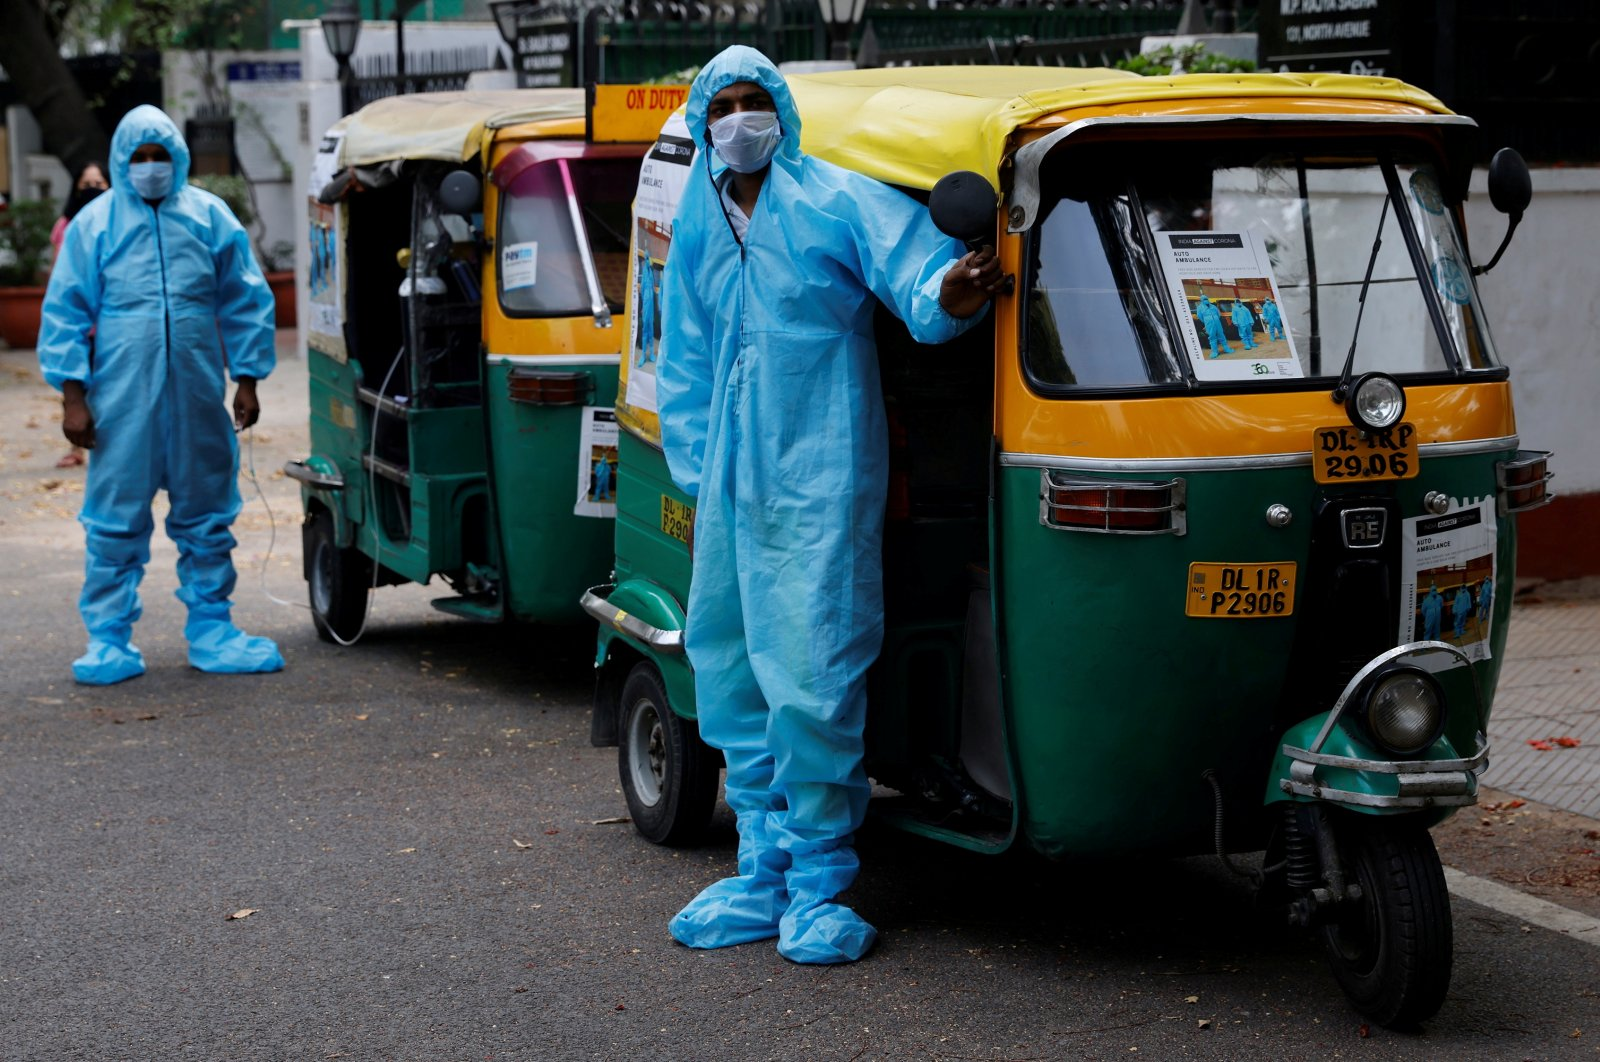 Drivers stand near autorickshaw ambulances, prepared to transfer people suffering from the coronavirus and their relatives for free, in New Delhi, India, May 5, 2021. (Reuters / Adnan Abidi Photo)